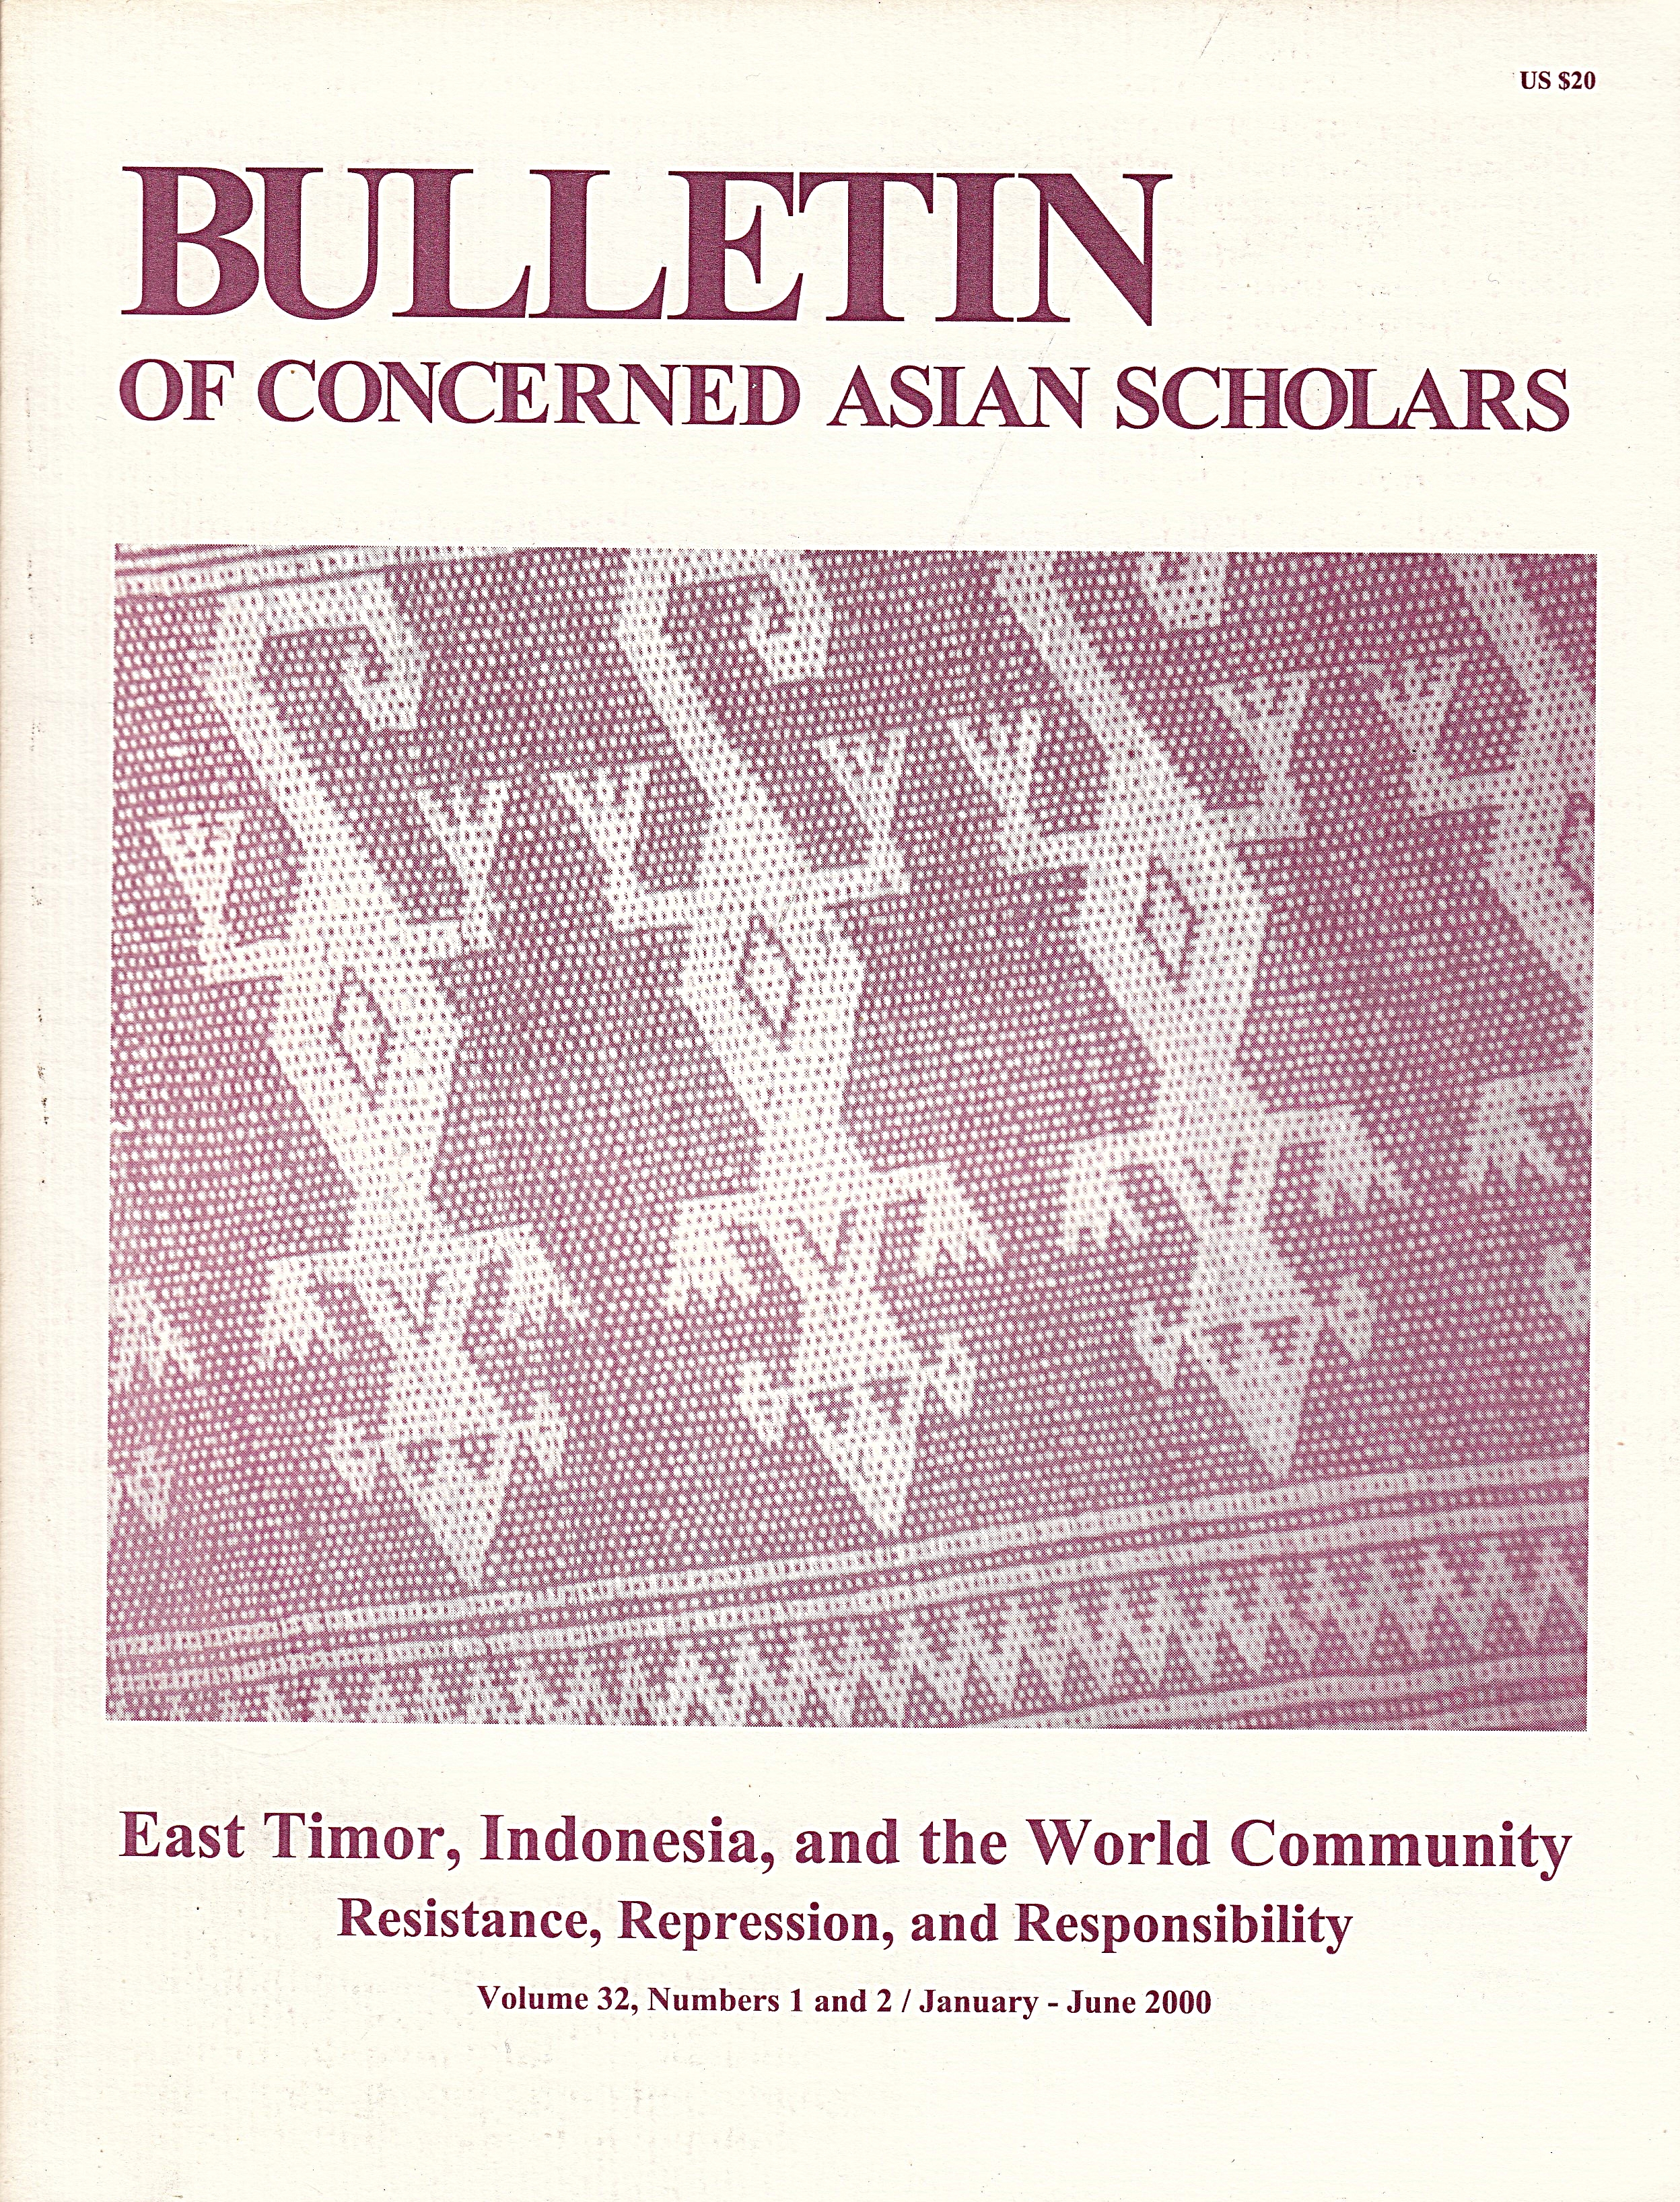 East Timor, Indonesia, and the World Community: Resistance, Repression, and Responsibility